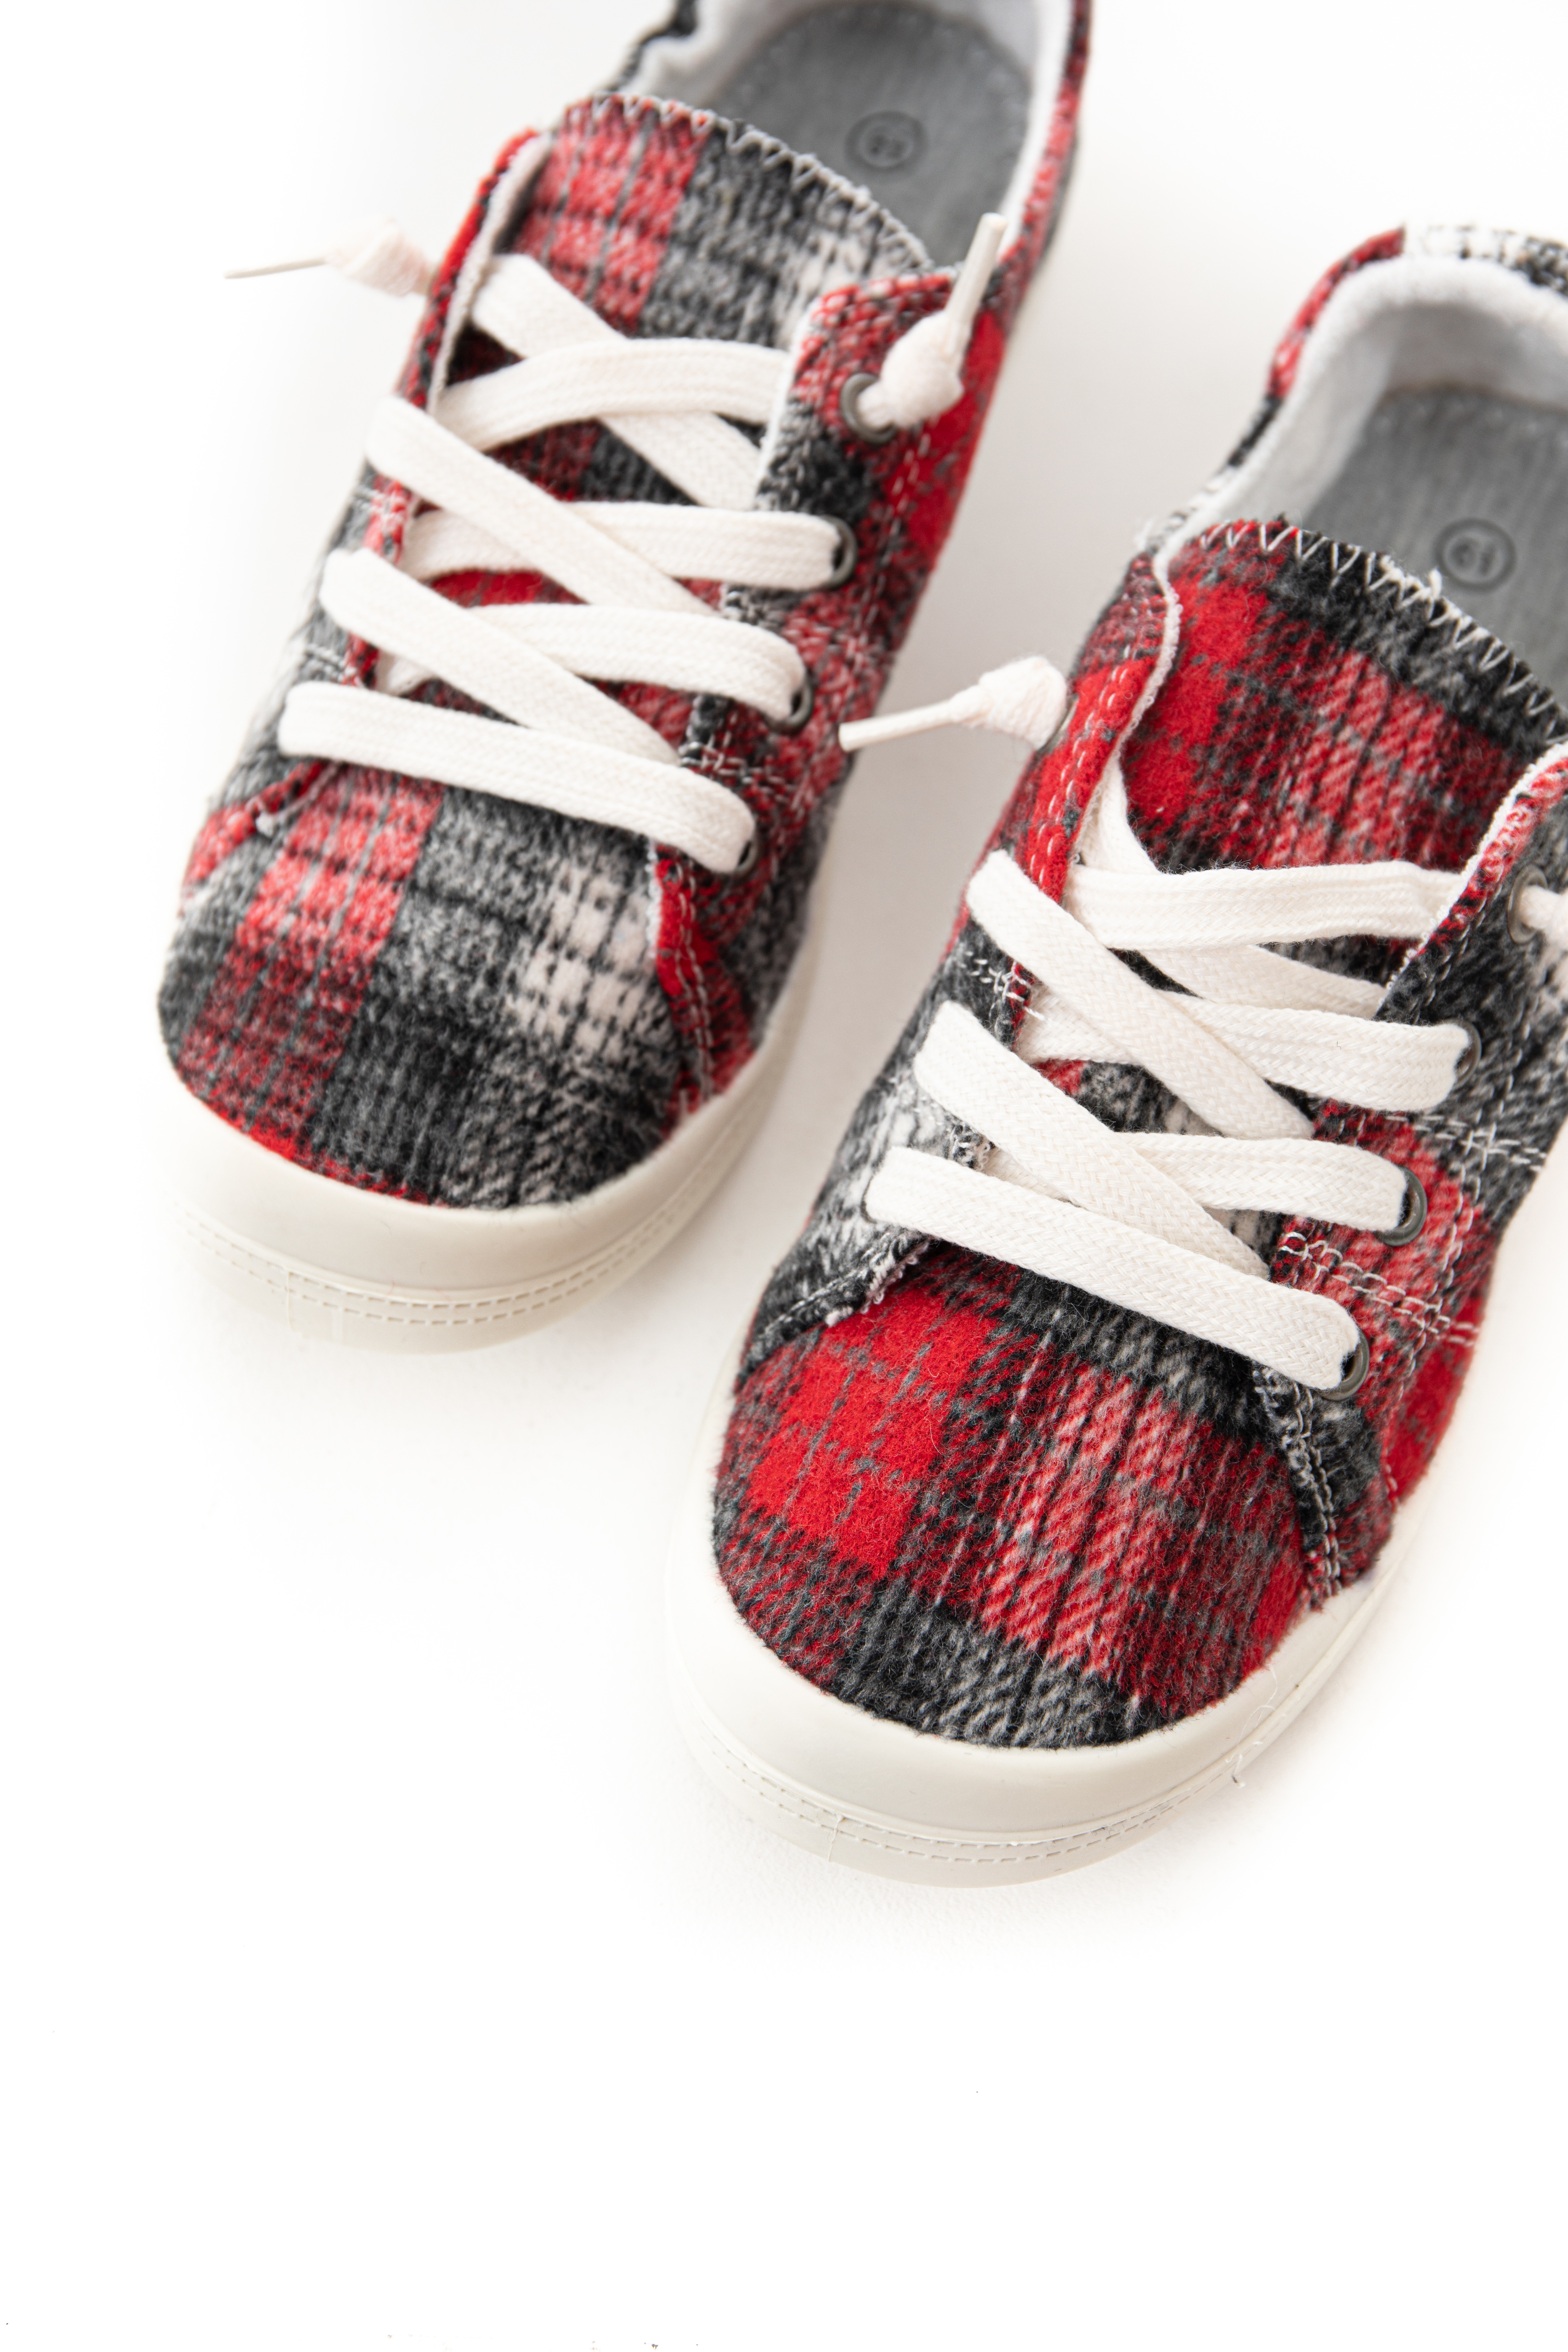 Red and Charcoal Plaid Sneakers with Shoelace Details